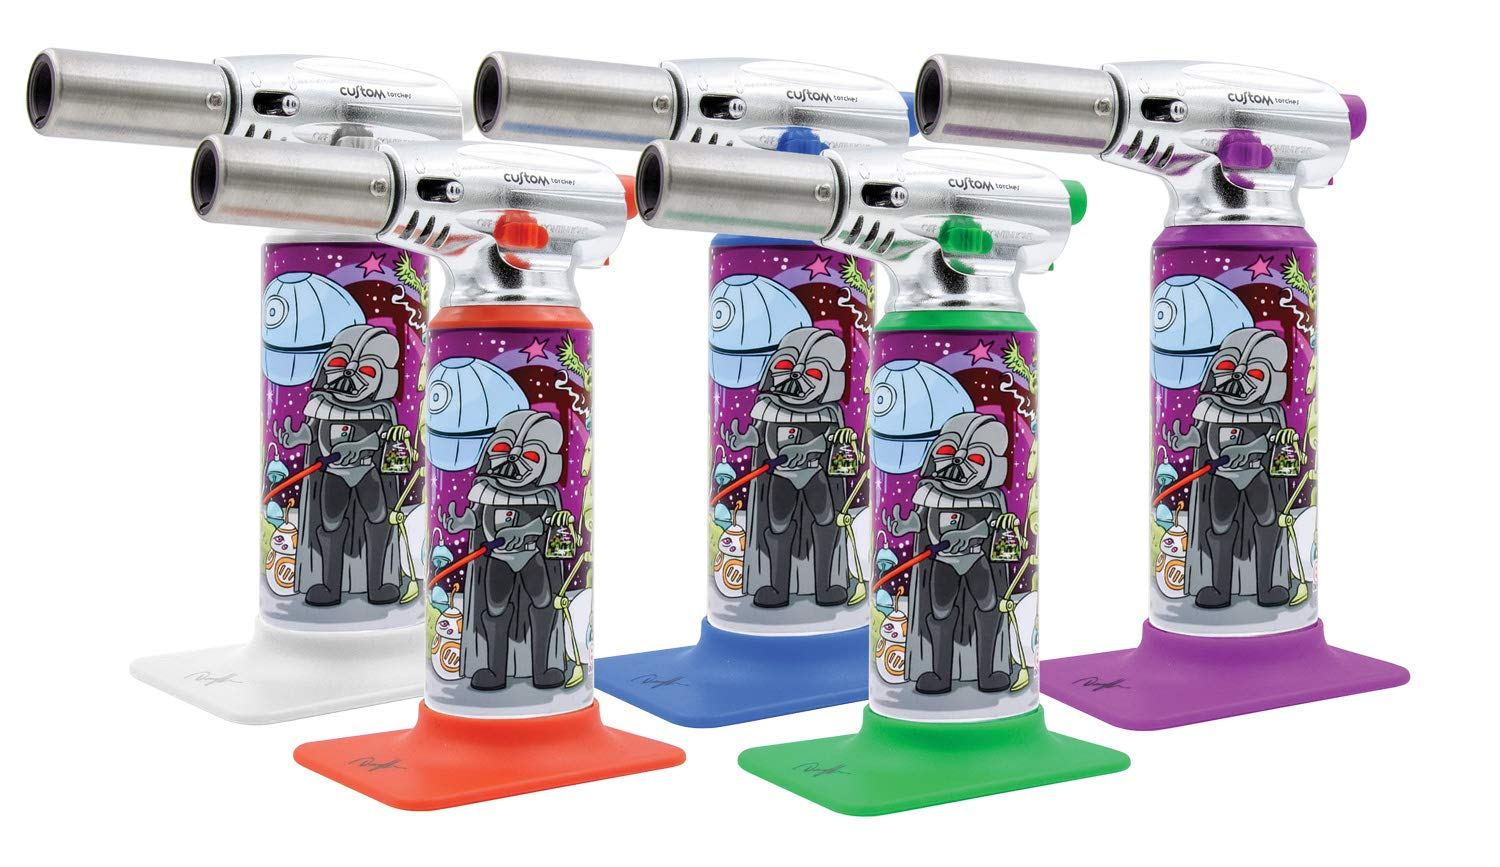 Dunkees Butane Torch Lighter - 7'' / Assorted Colors & Designs (Dab Wars) by Custom Torches (Image #1)